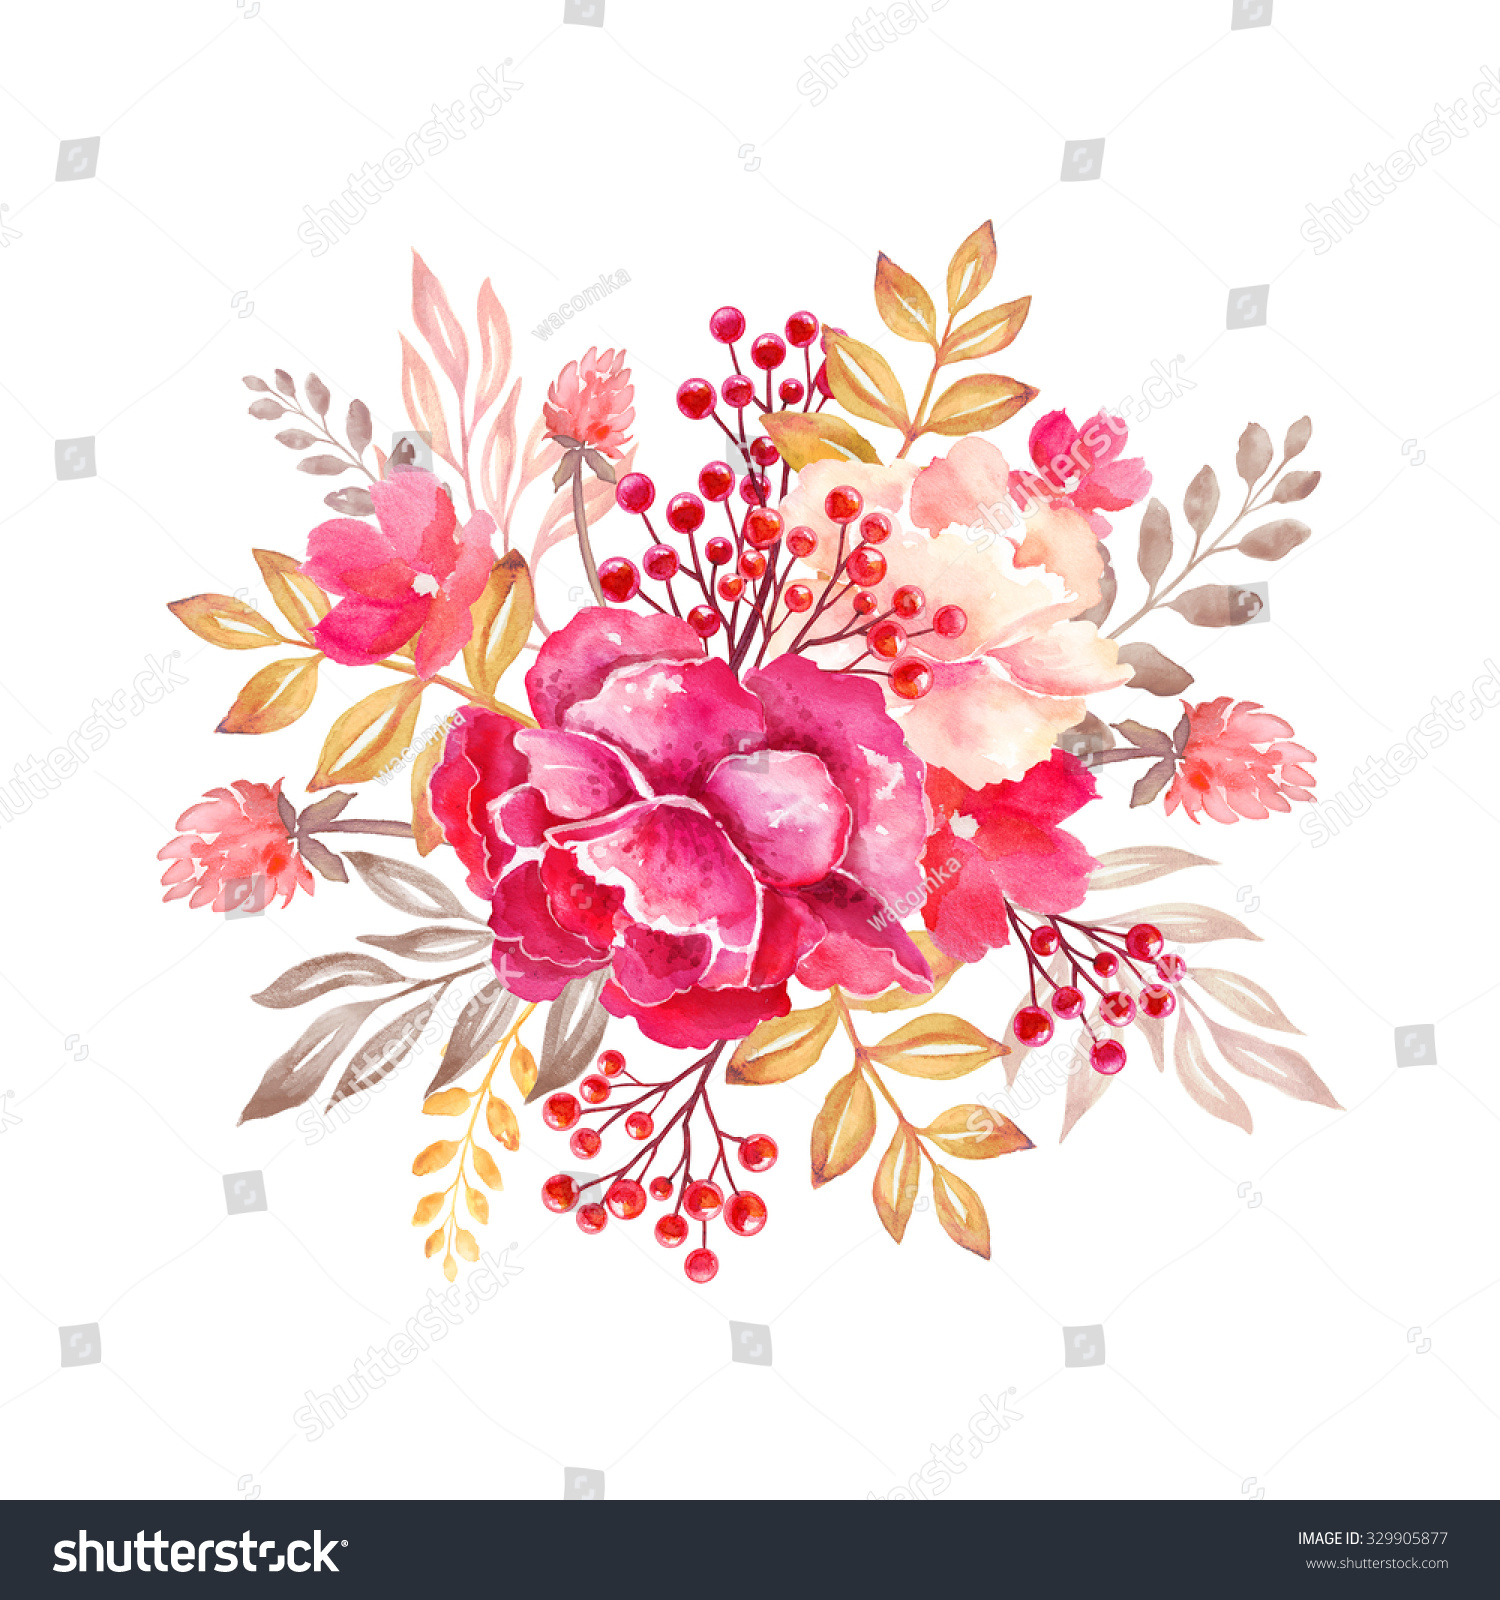 Floral arrangement round bouquet flowers design stock illustration floral arrangement round bouquet flowers design elements watercolor clip art isolated on white izmirmasajfo